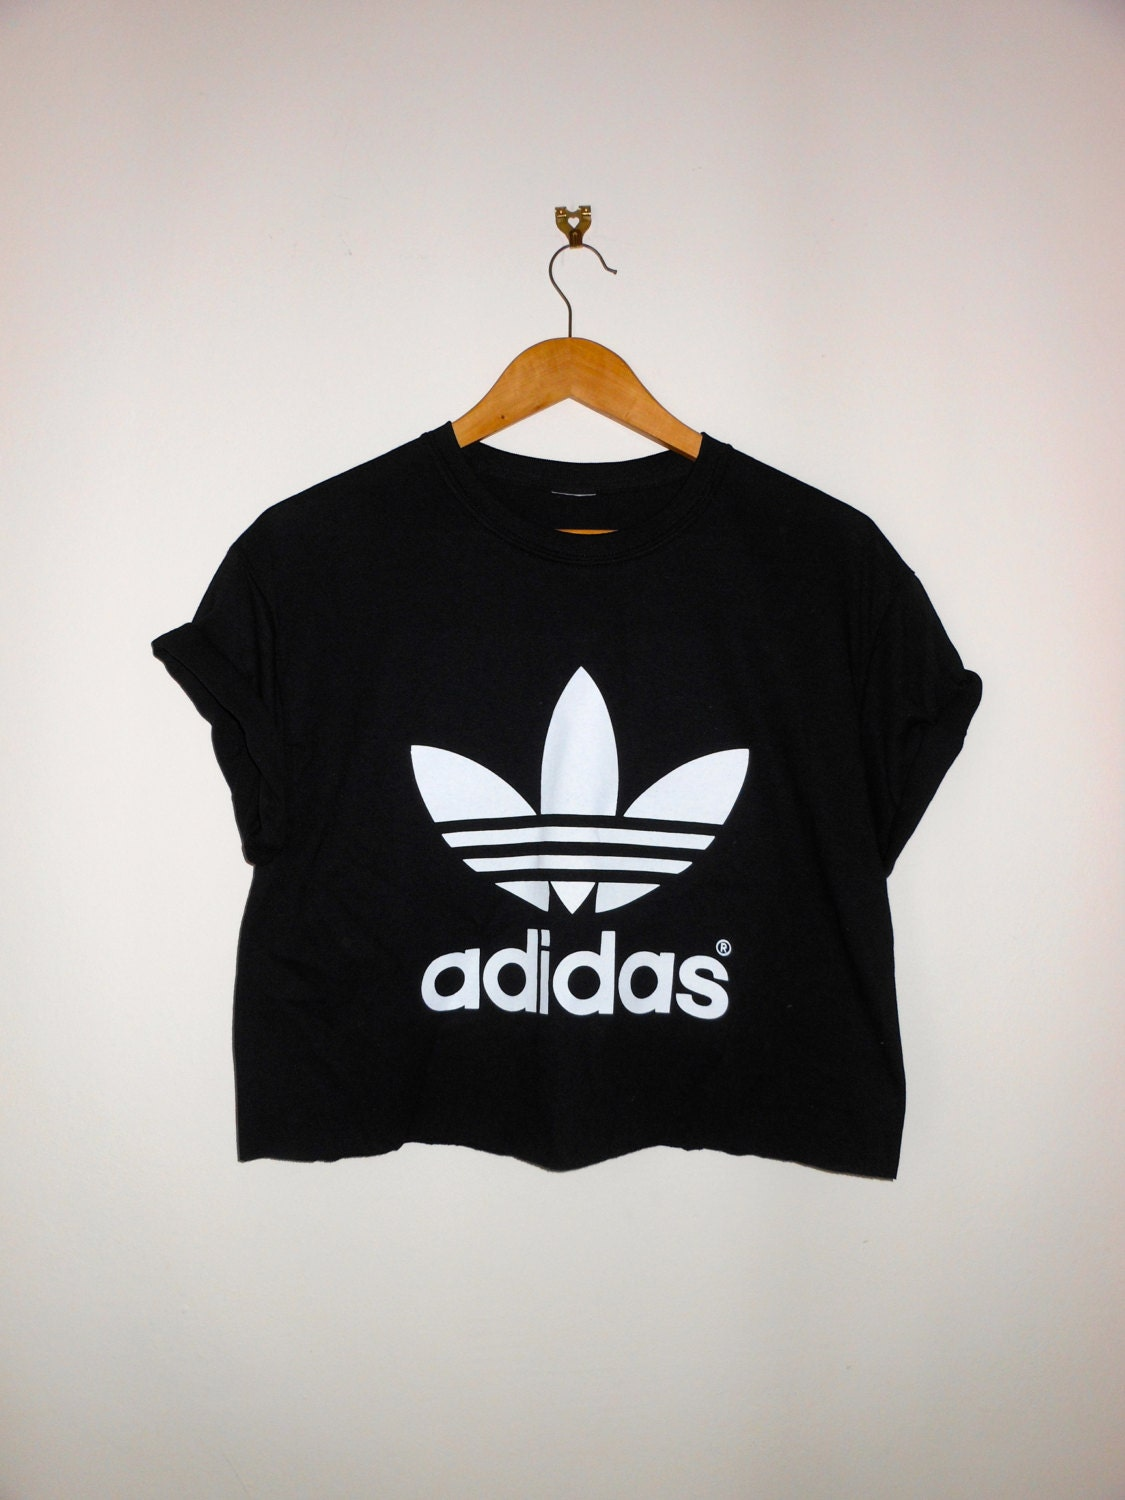 d993308c5e072 CLASSIC BACK ADIDAS SWAG SEXY STYLE CROP TOP TSHIRT FRESH BOSS DOPE  CELEBRITY FESTIVAL CLOTHING FASHION URBAN UNQIUE on The Hunt